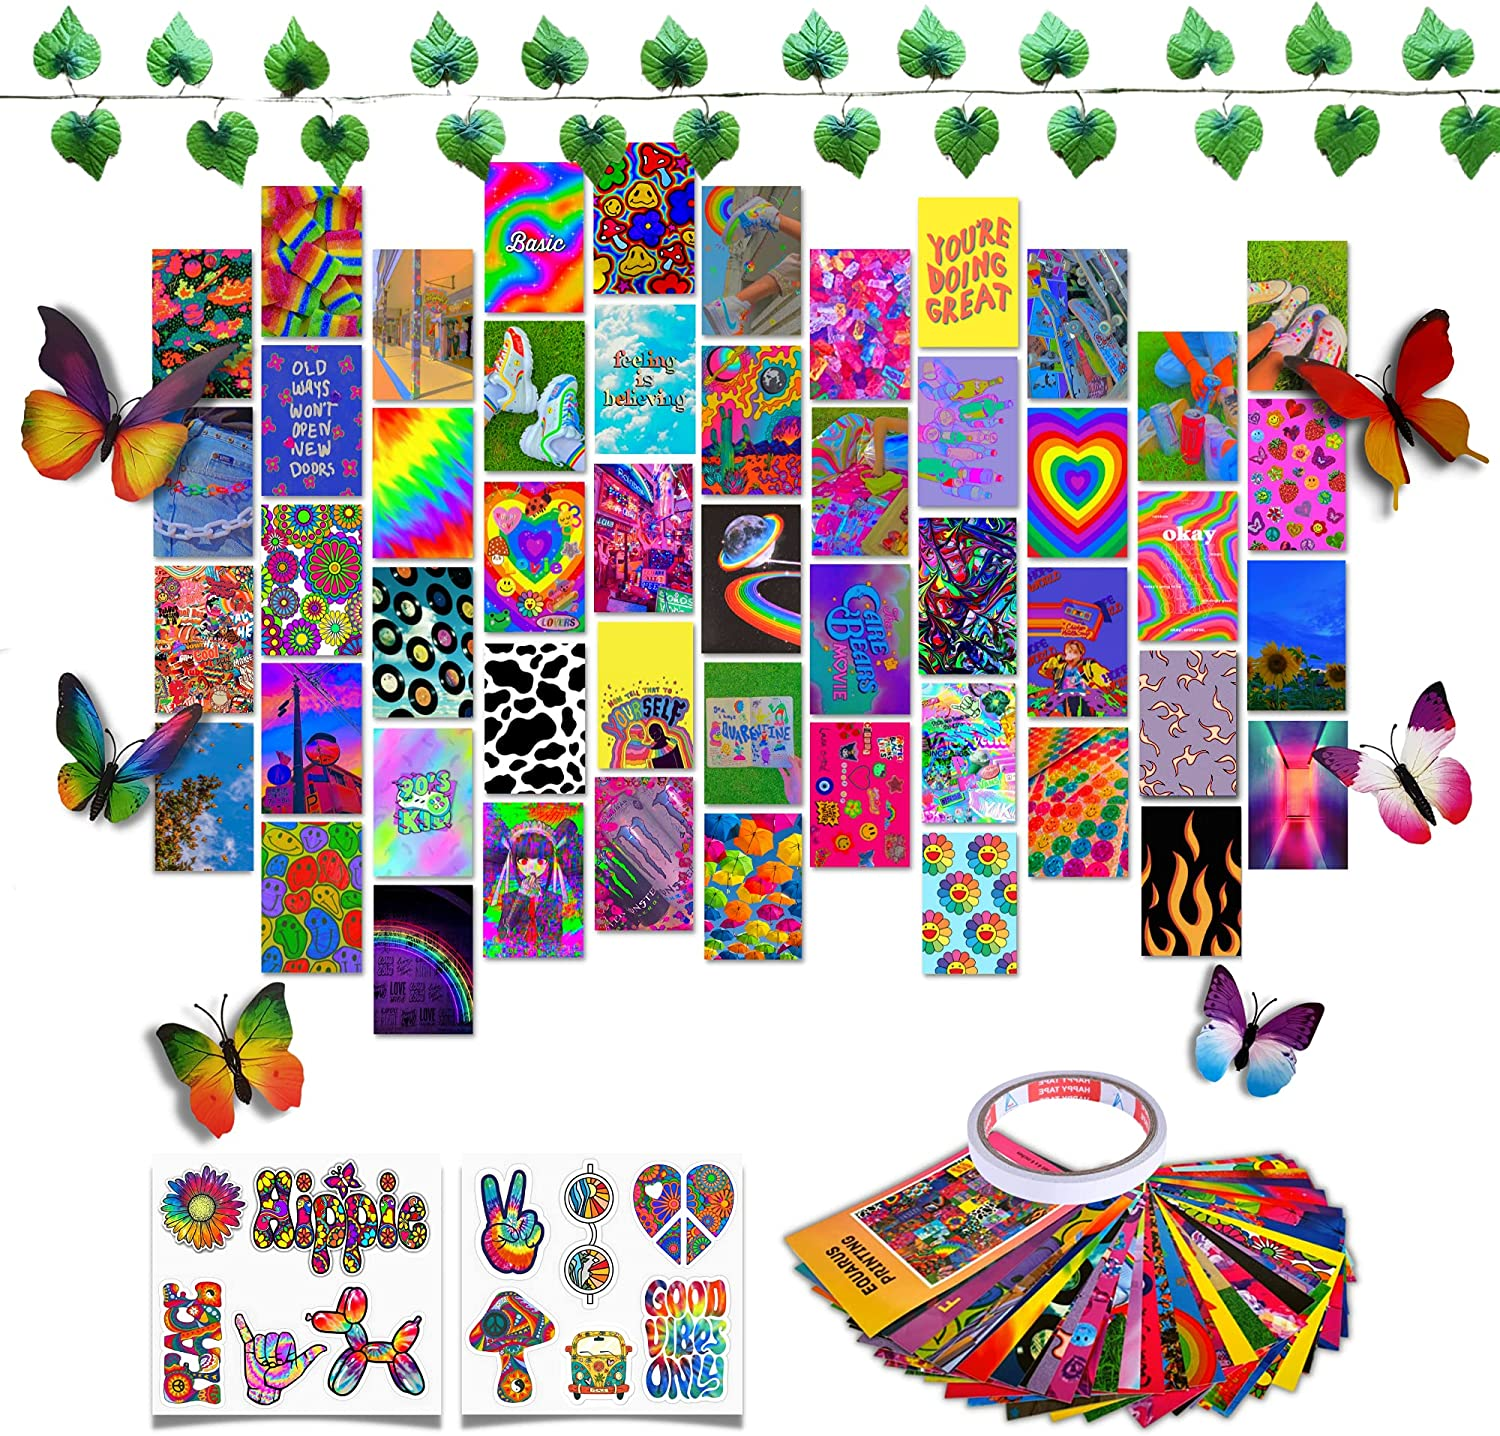 Indie Decor Wall Collage Kit Aesthetic Pictures, Indie Posters For Kidcore Room Decor, Dreamcore Aesthetic Room Decor For Teen Girls Bedroom, Trippy Decor Picture Cute Photo